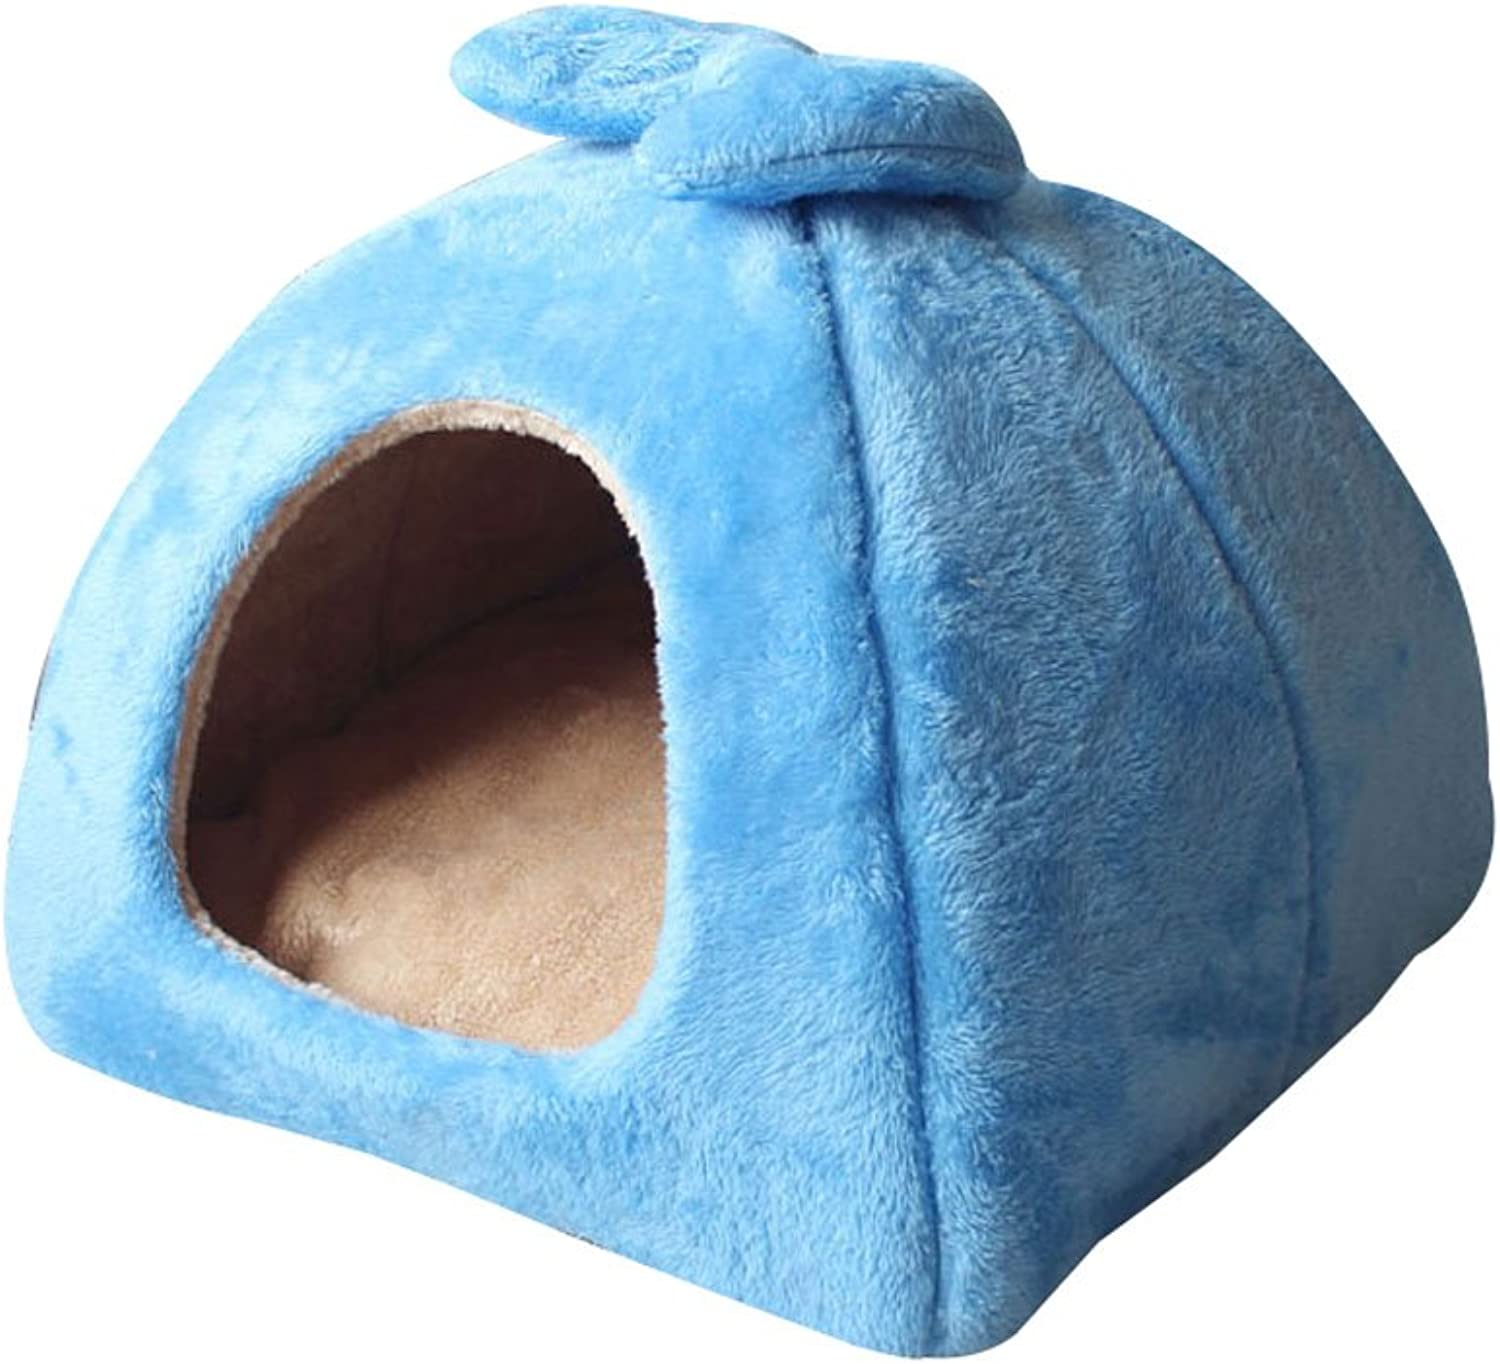 MIAOLIDP Kennel cat litter small and medium dog house Teddy dog house dog bed four seasons winter and summer dualuse yurt Pet supplies (color   bluee, Size   43  43  36cm)